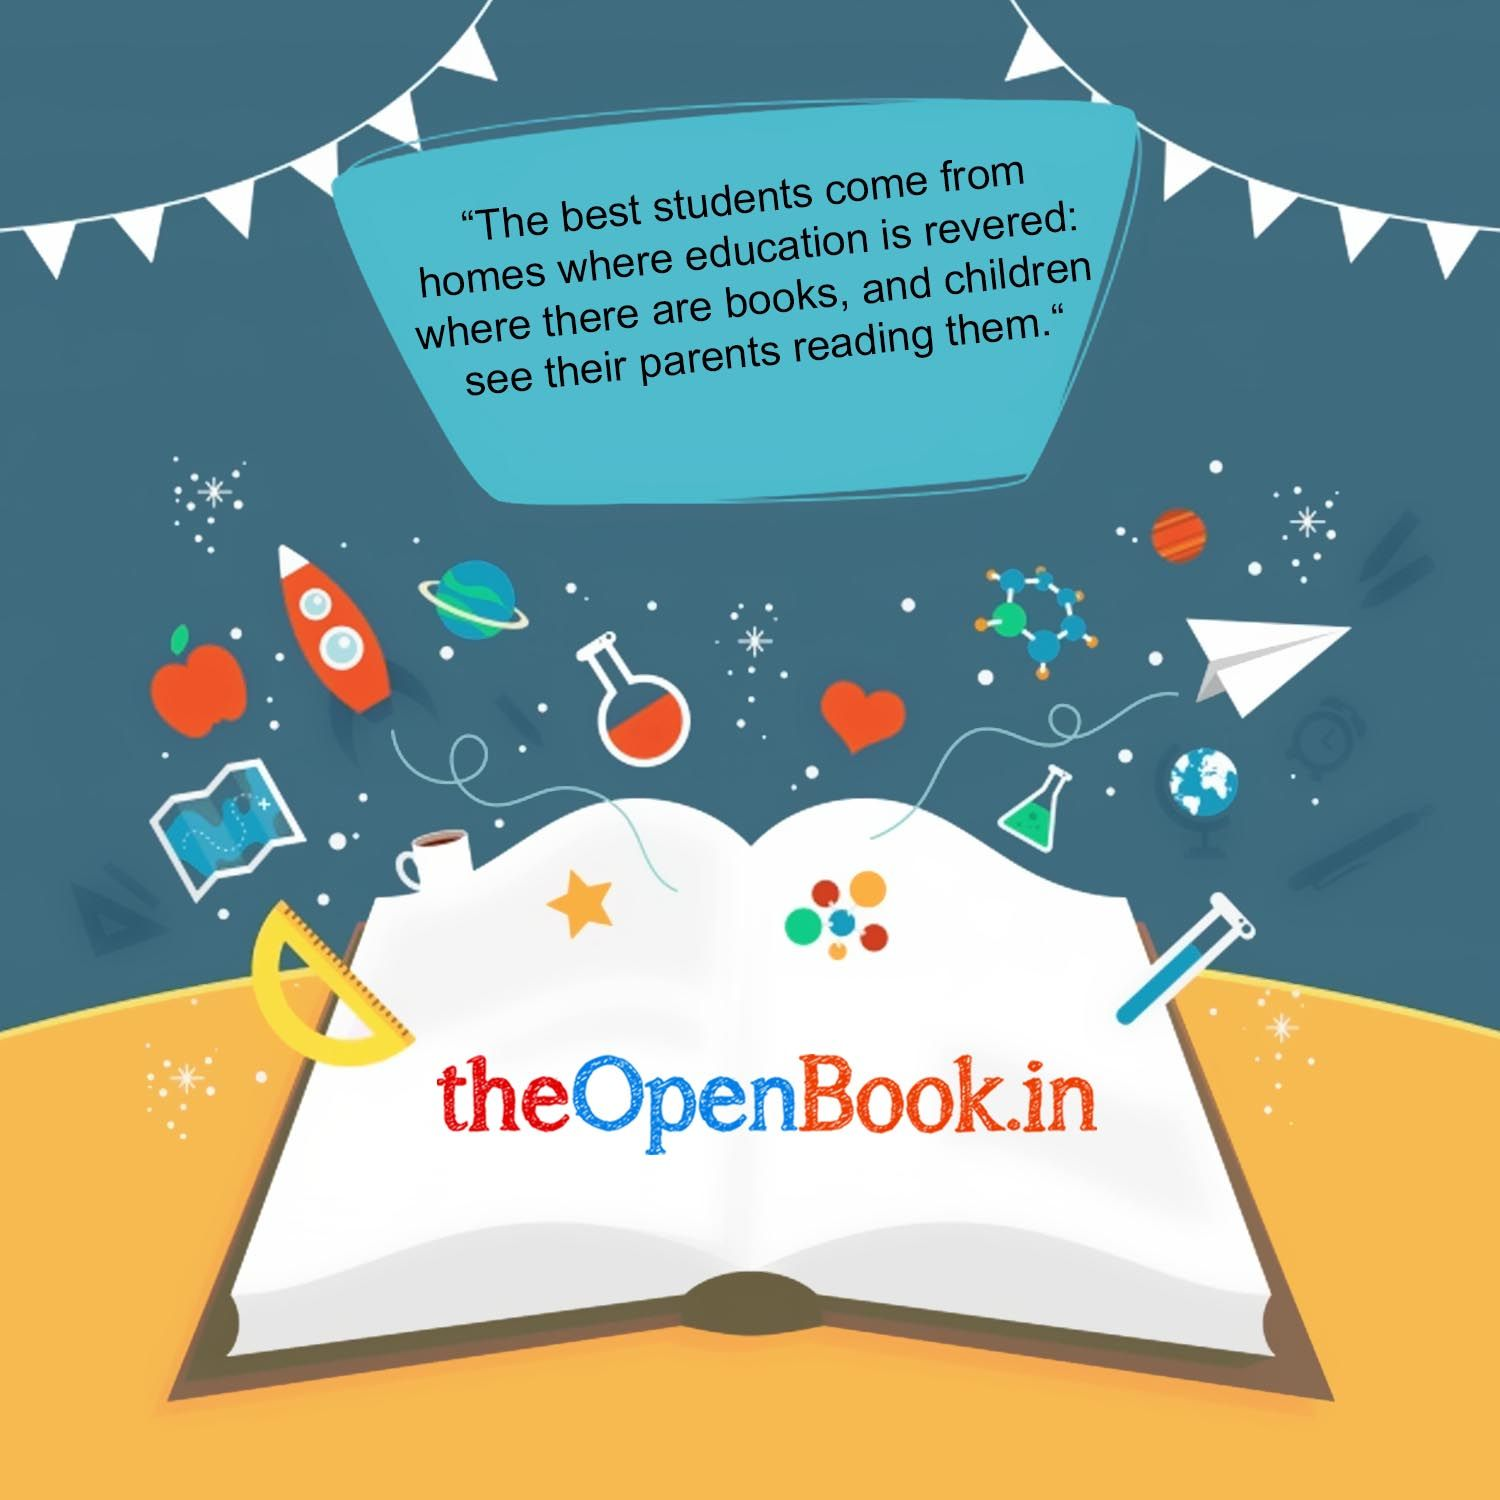 Theopenbook Create Education For Kids The Open Book Is An